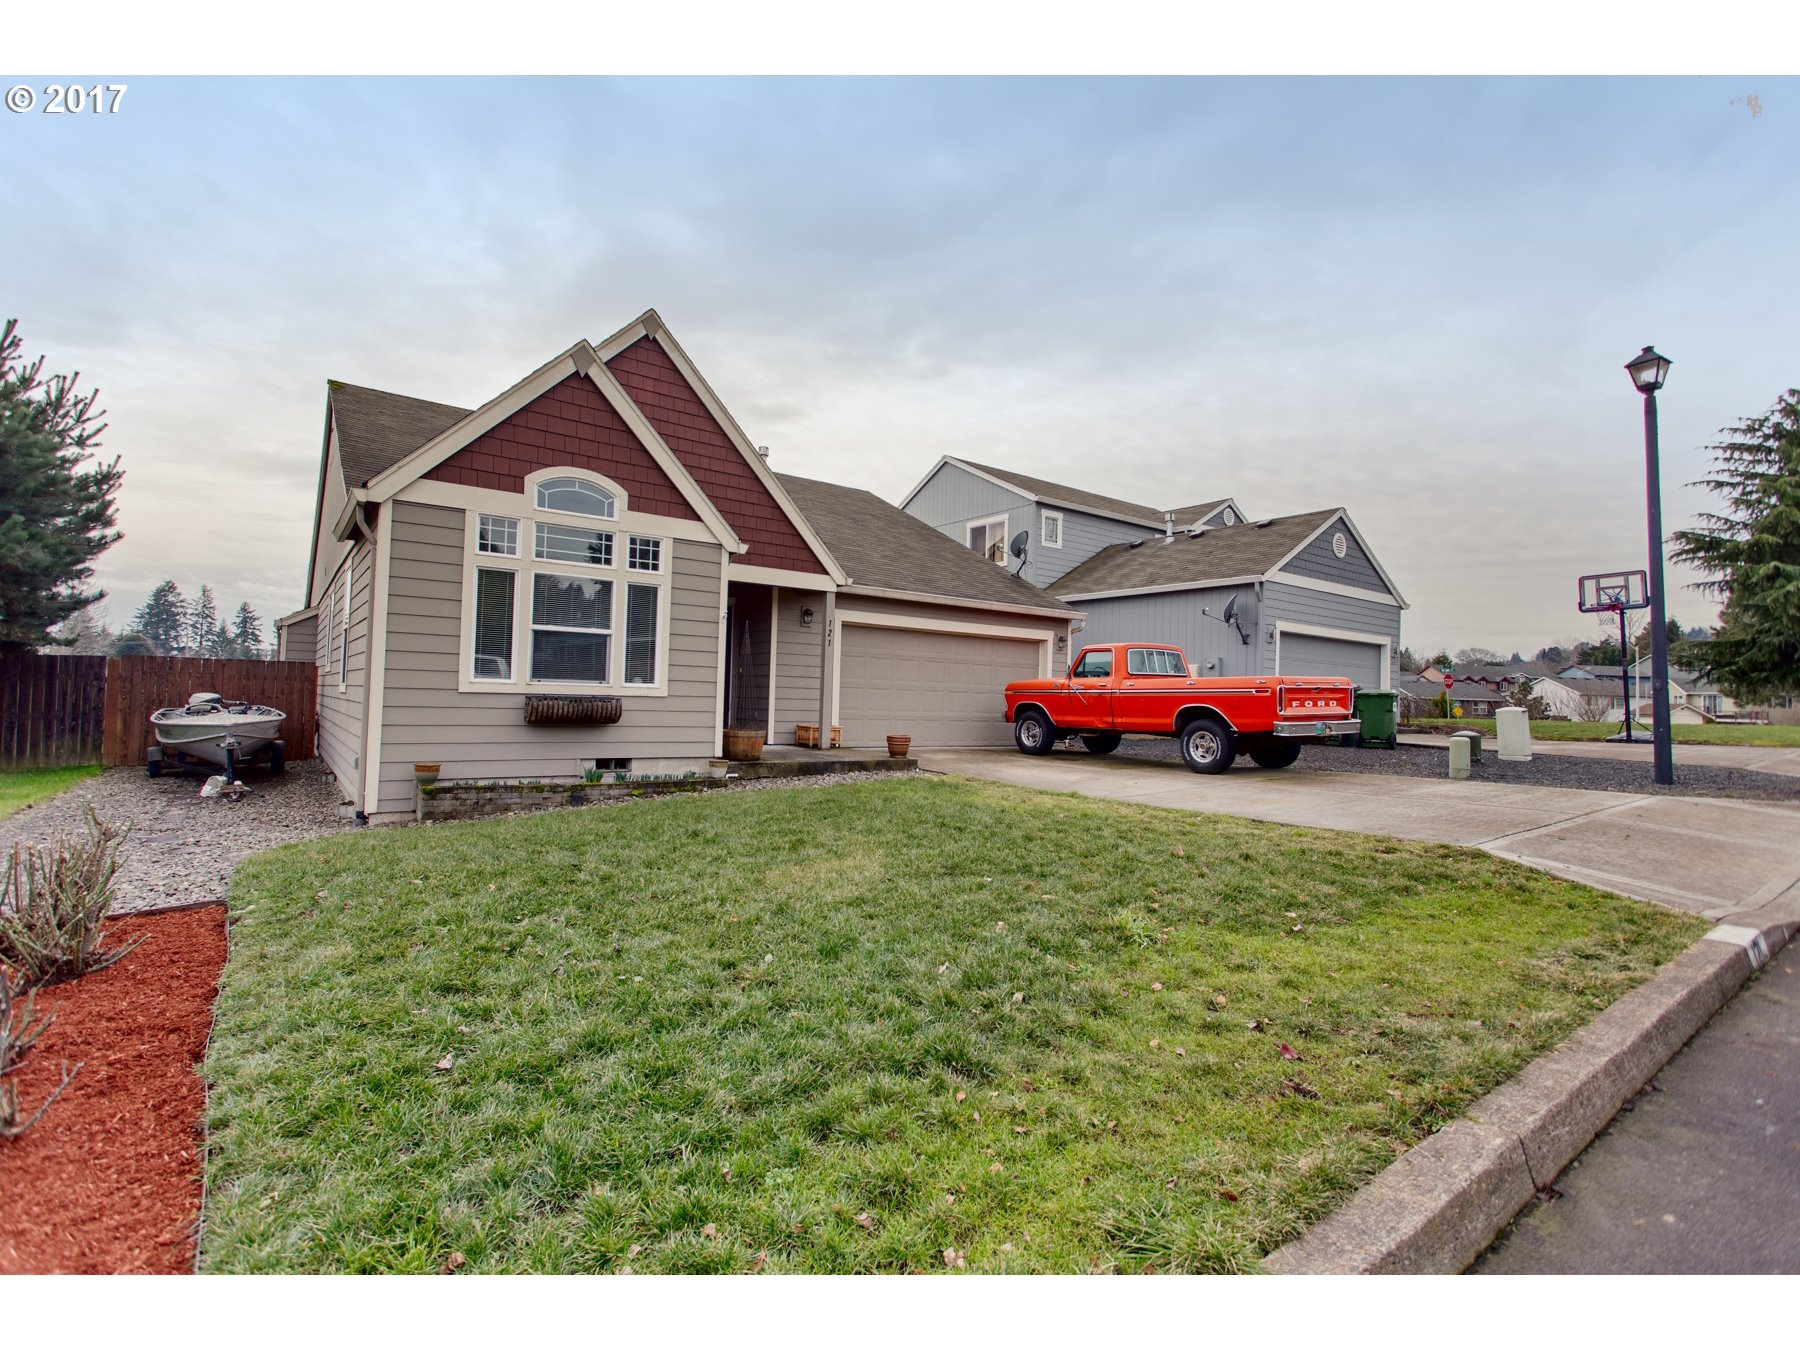 121 NW ALPINE ST, Dundee, OR 97115